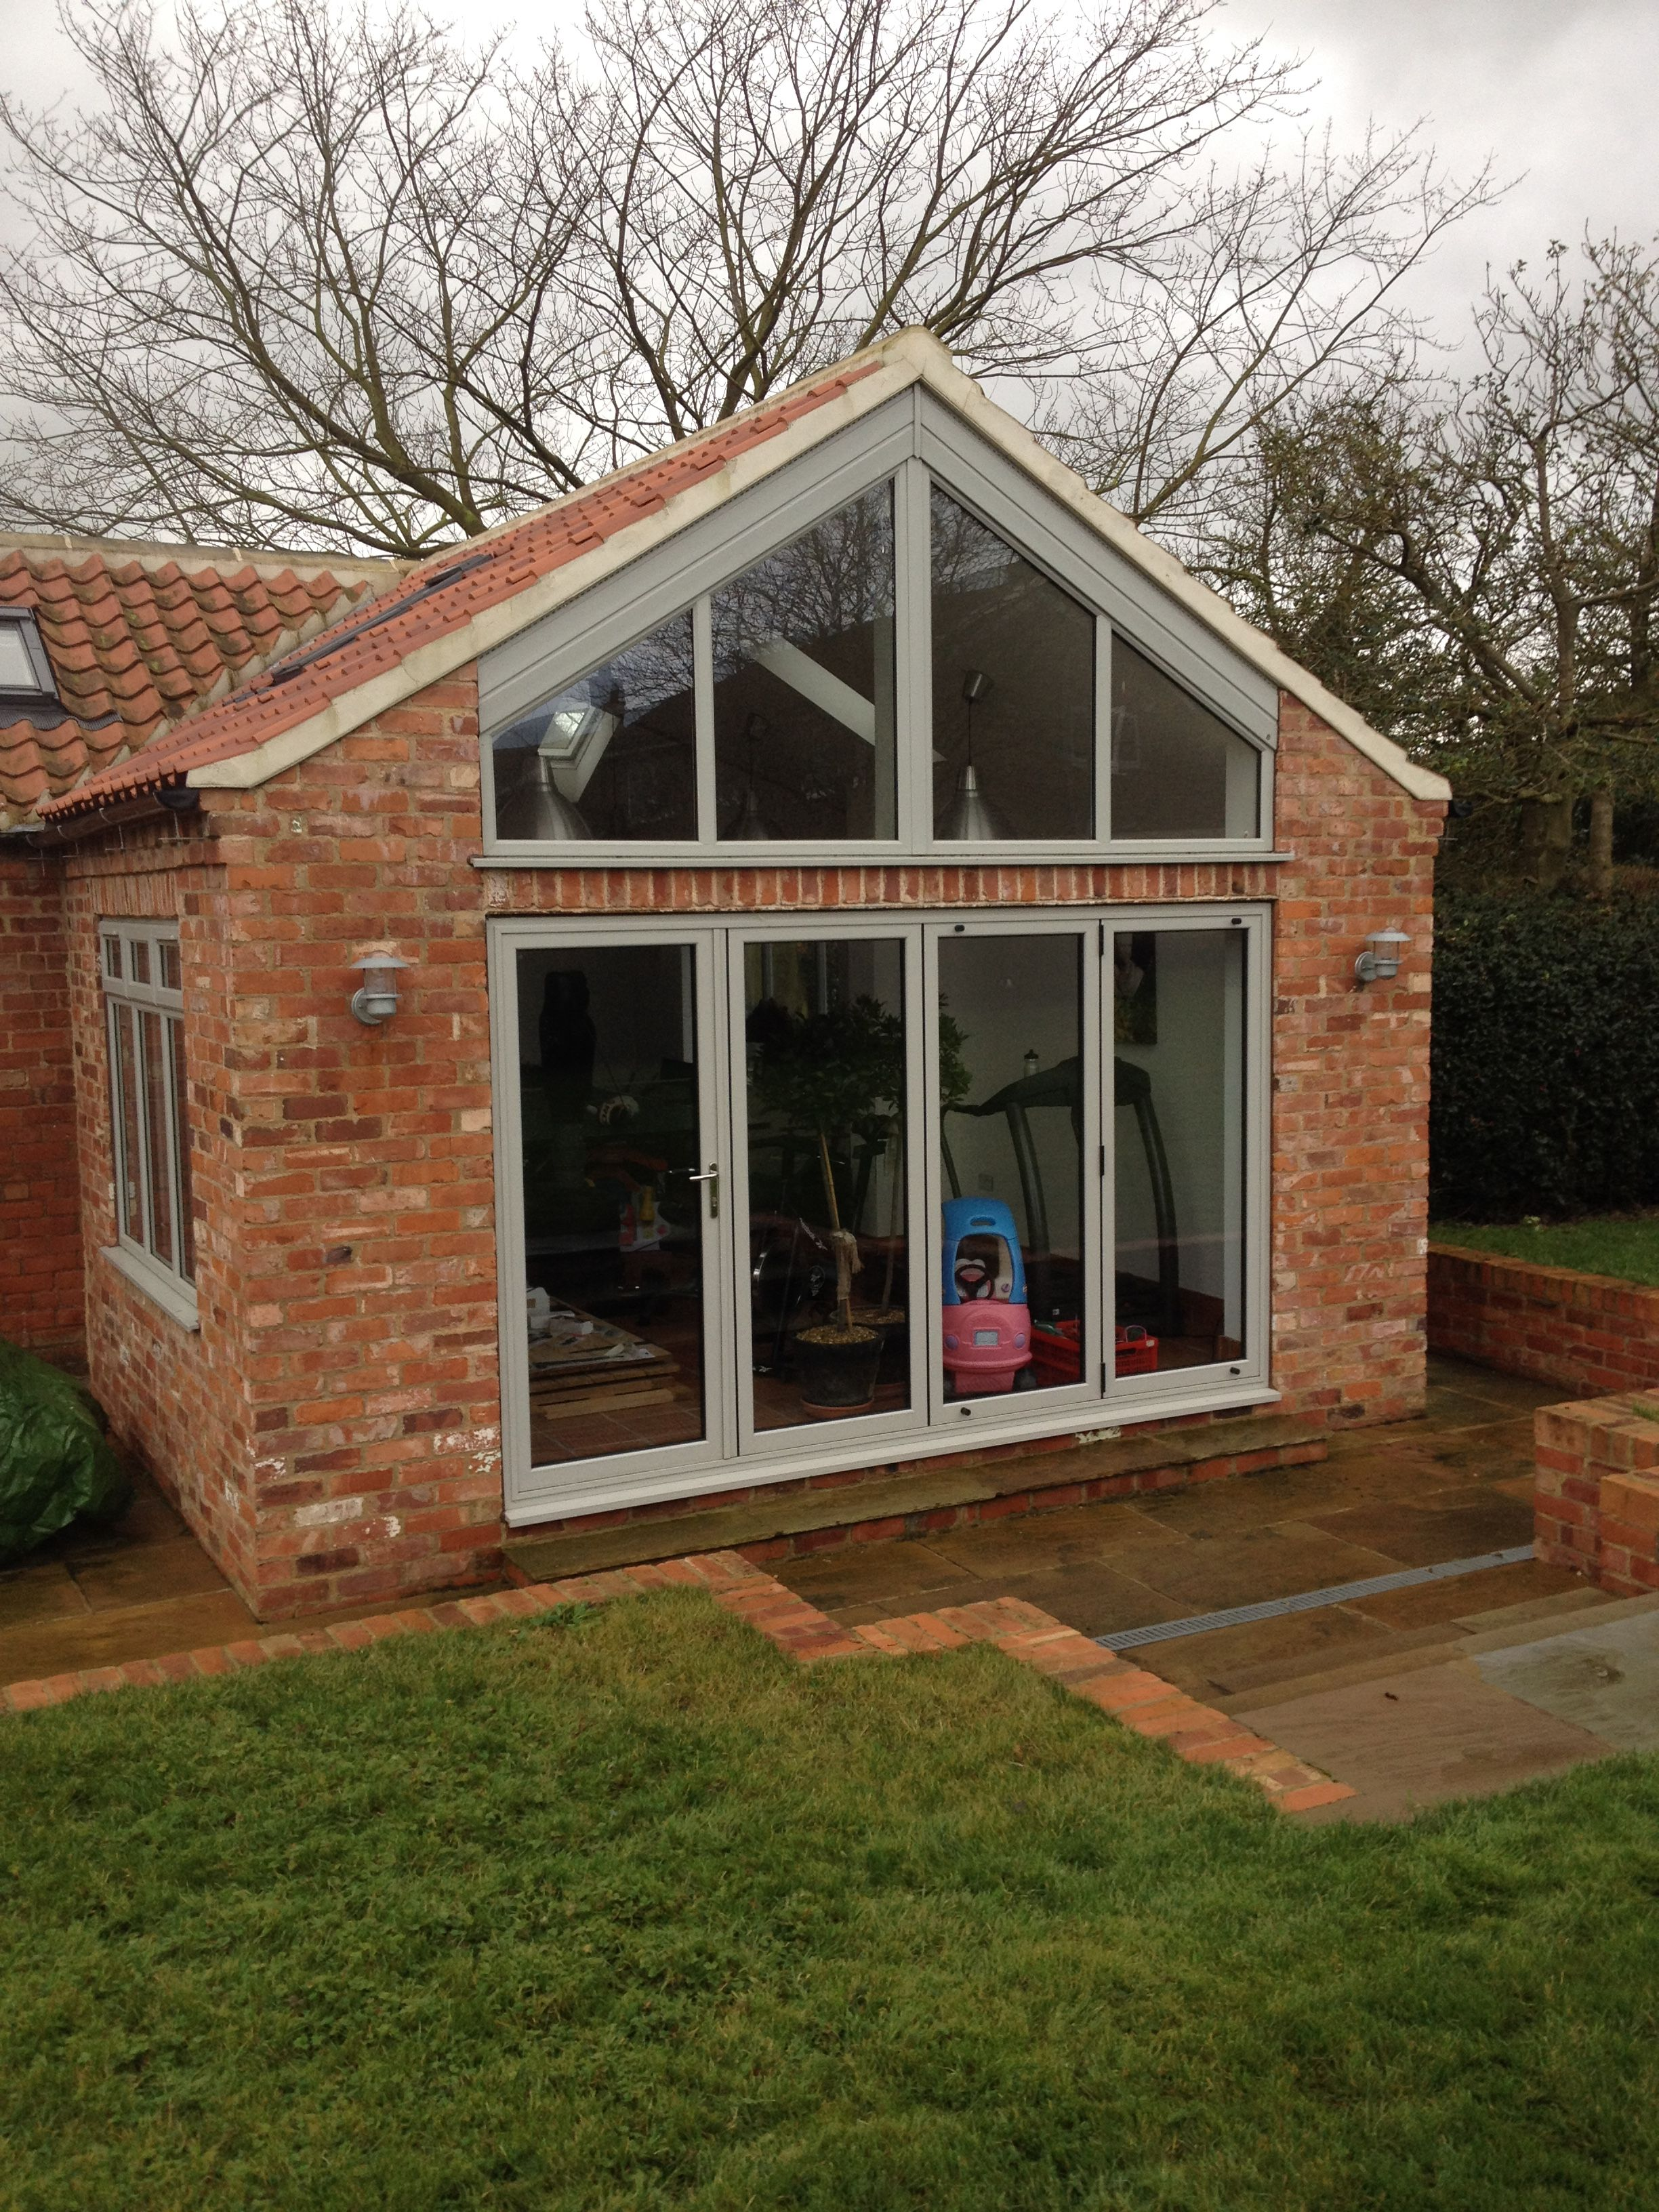 Photos Of Our Work Contact Us For A Free No Obligation Quote Sales Nationalwindowsystems Co Uk House Extension Design Garden Room Extensions Room Extensions